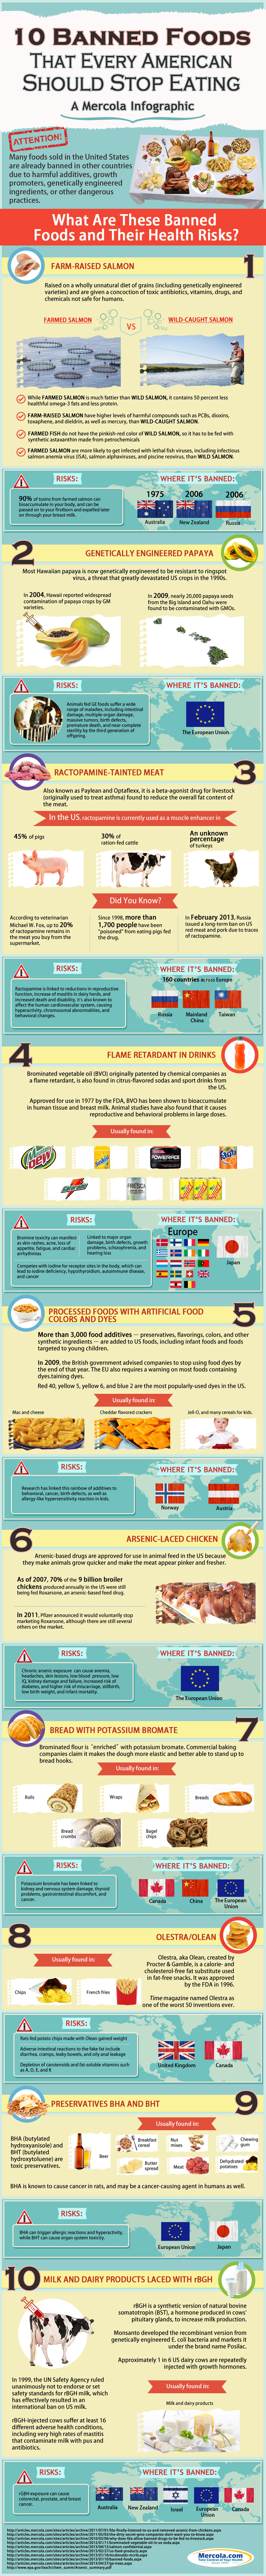 banned-foods-infographic-highres